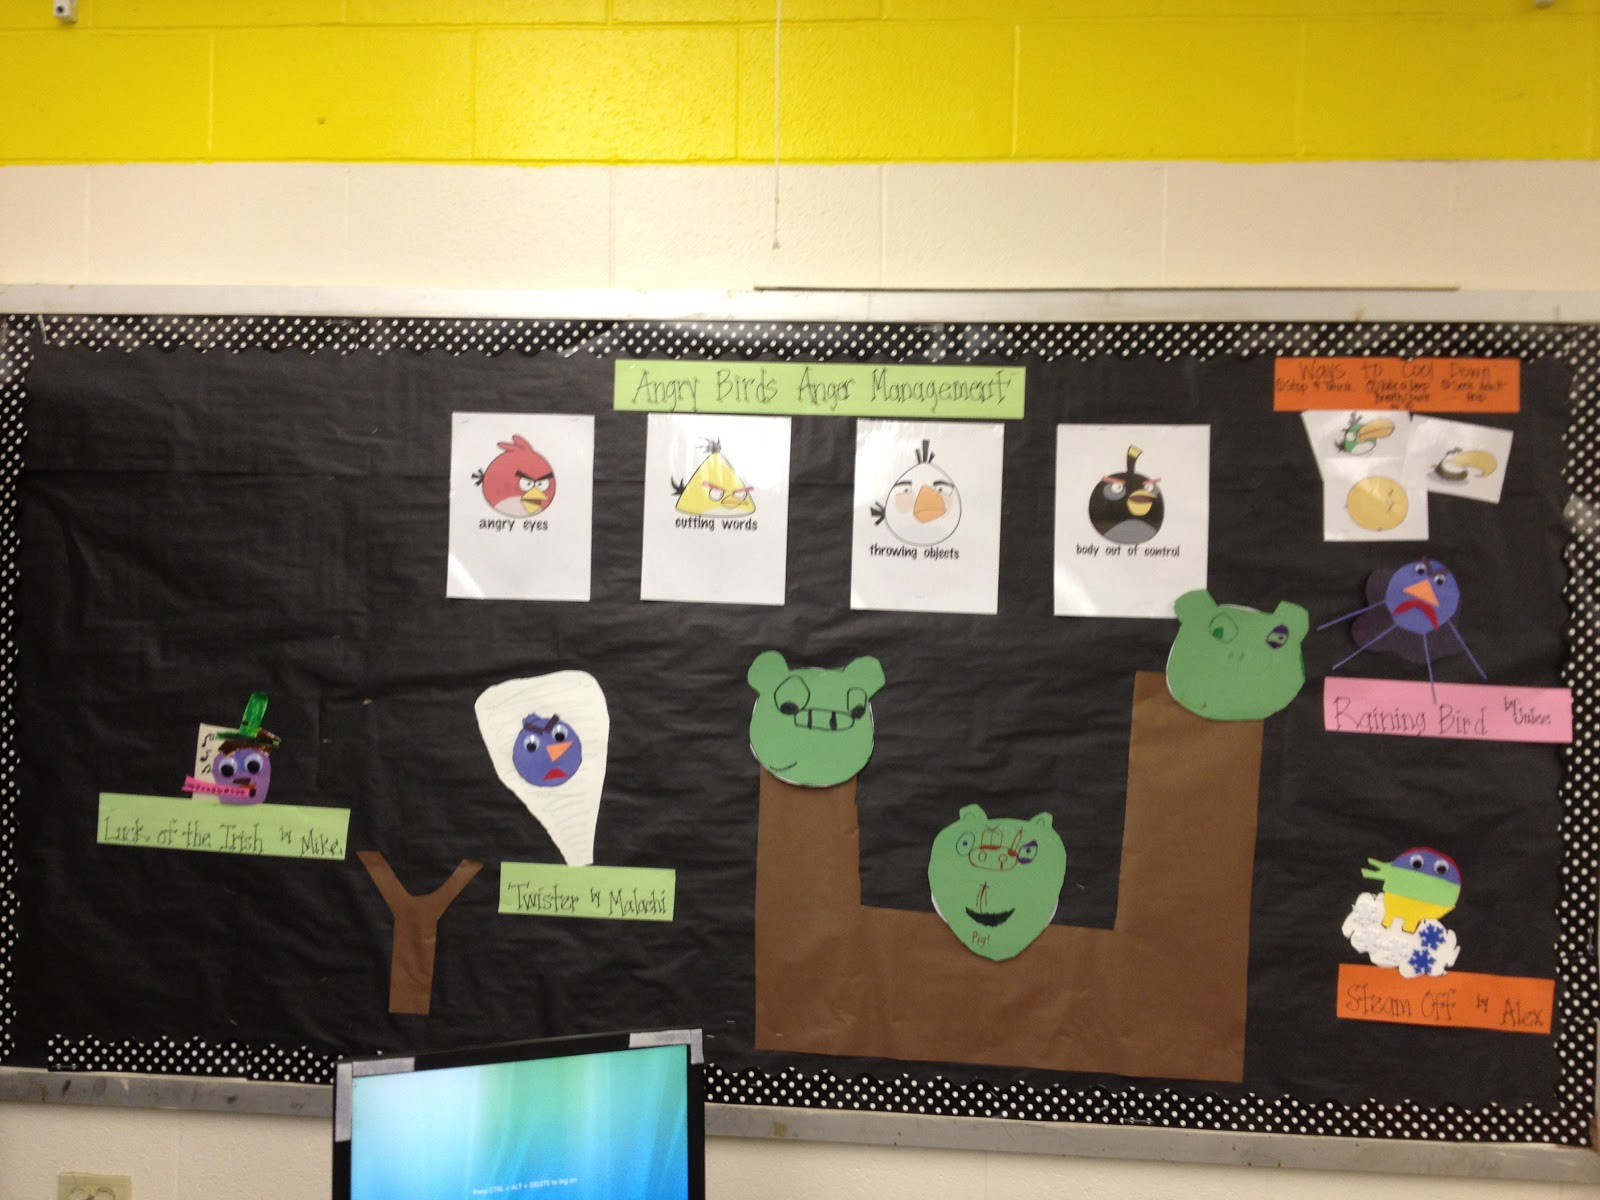 ... of Angry Birds we made a bulletin board to hang up all of hard work.